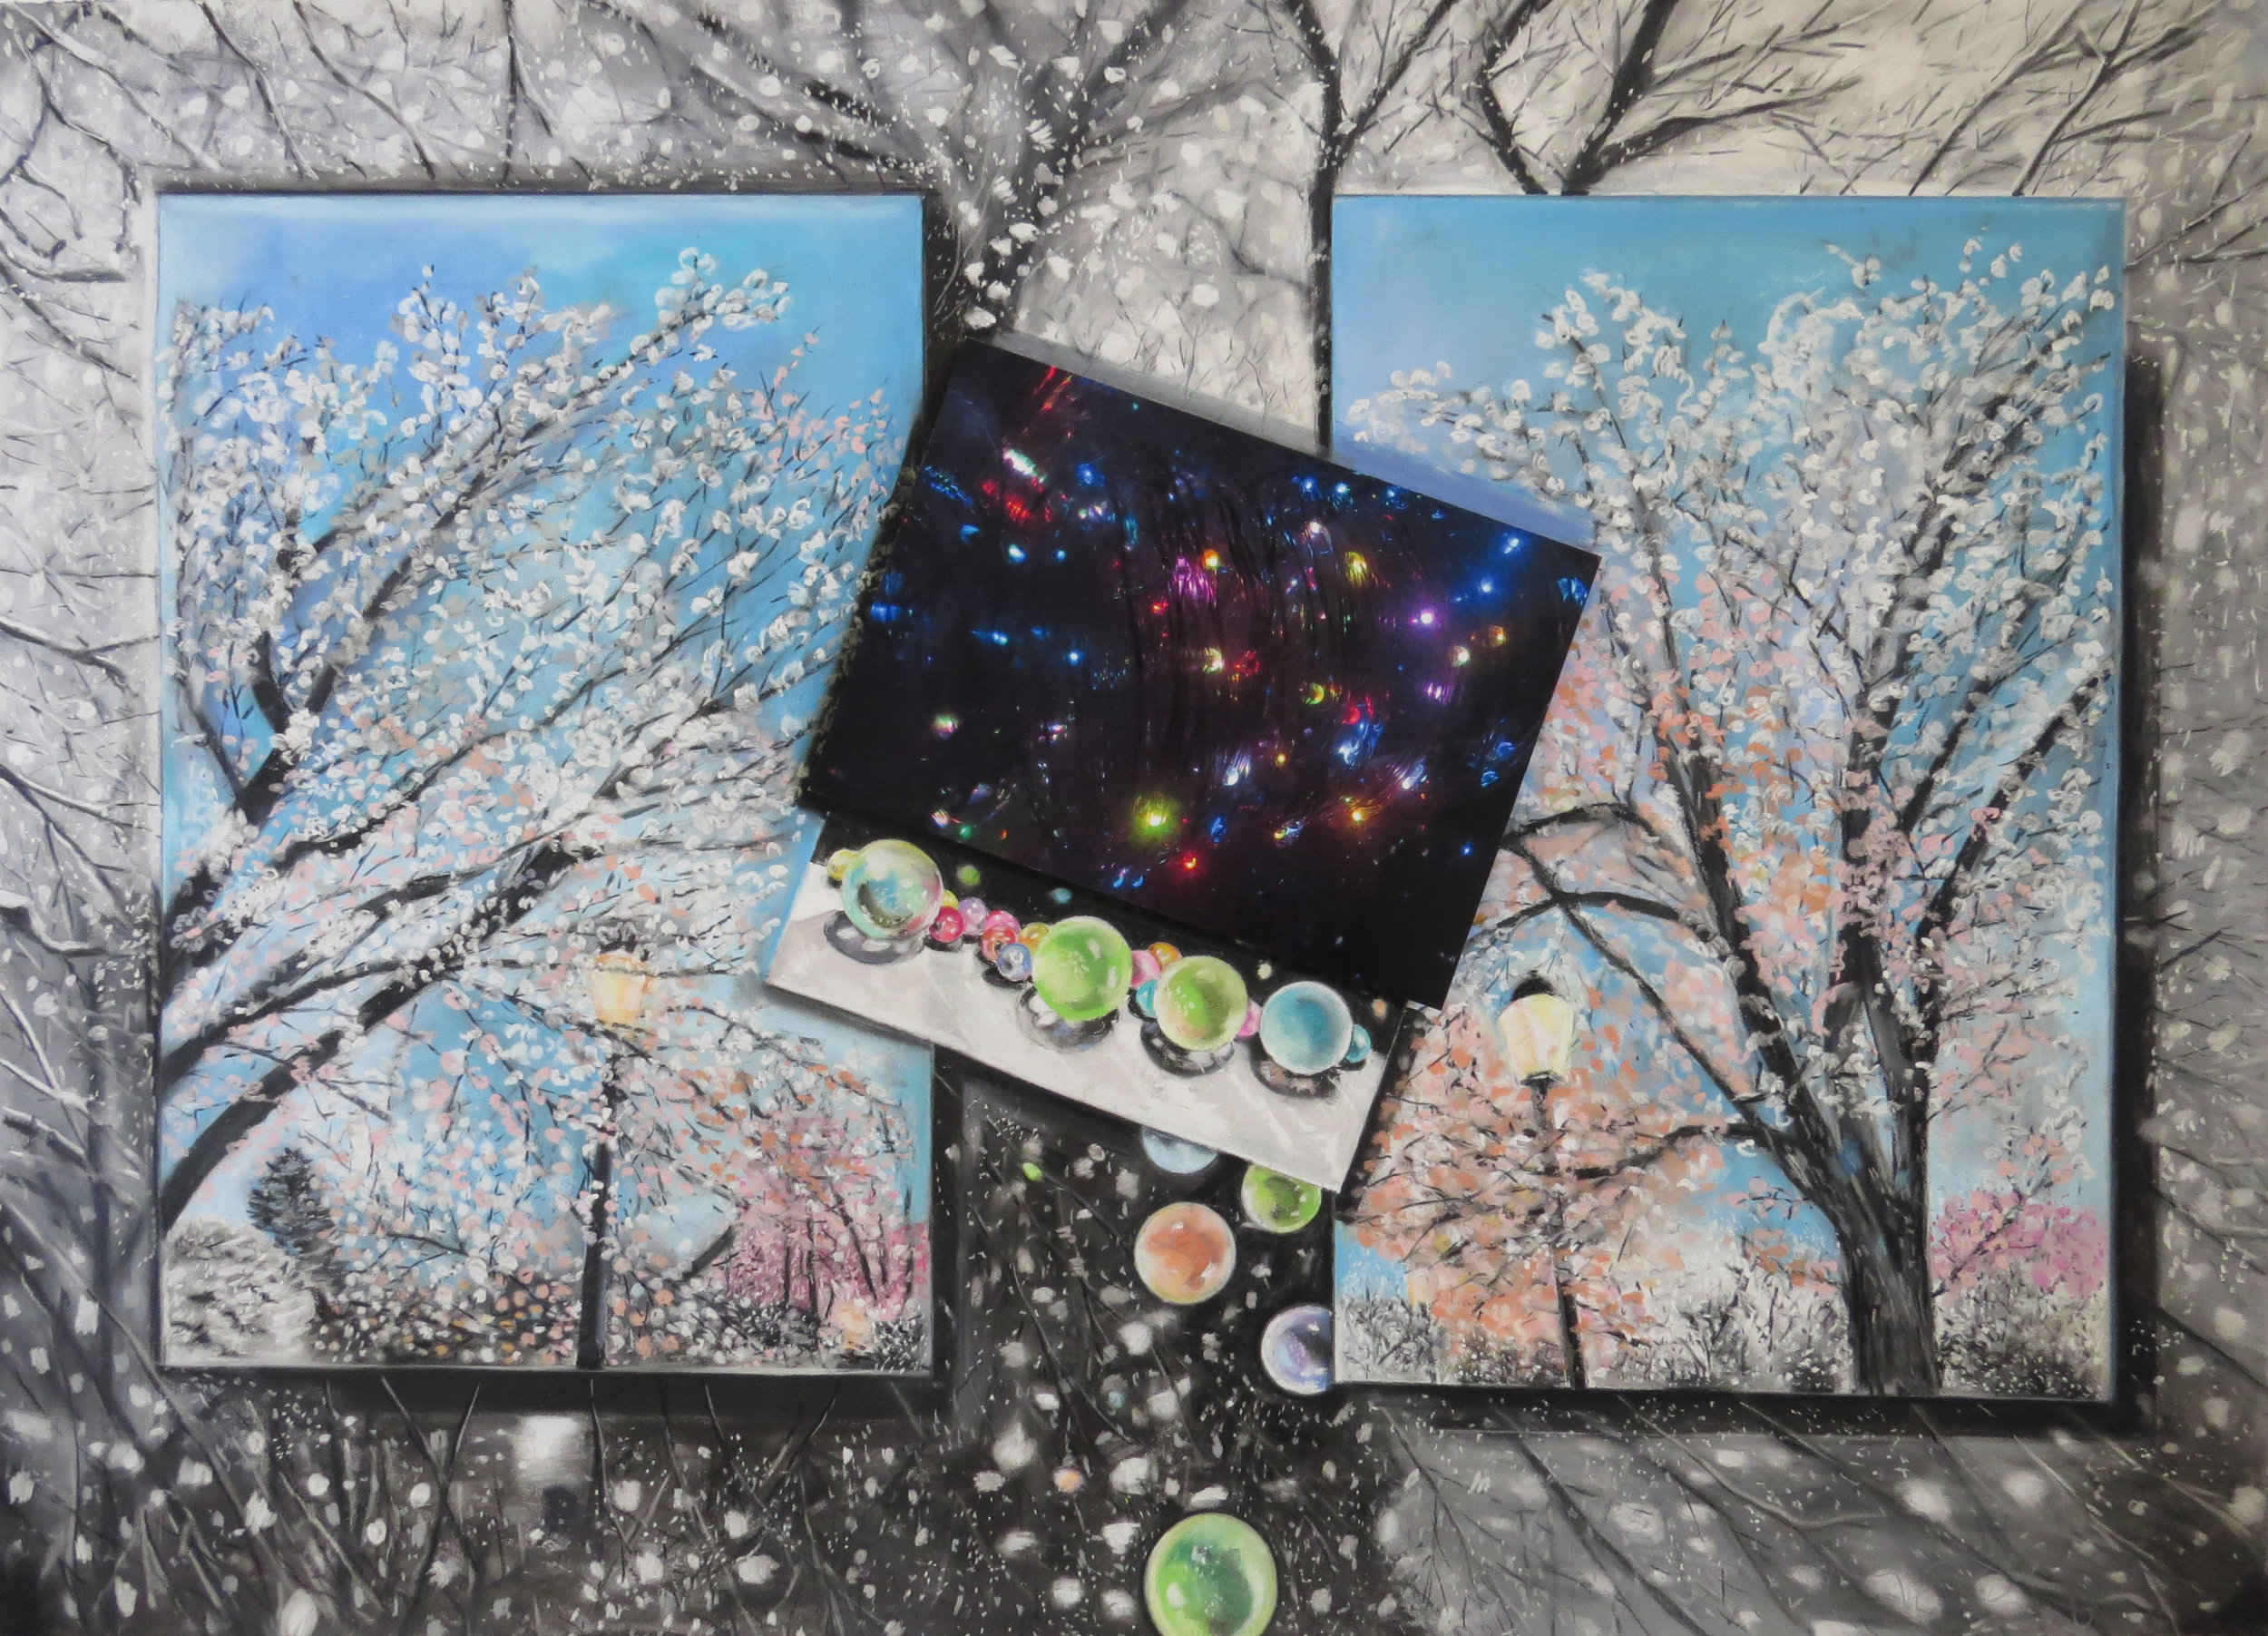 Twinkle, Flurry and Glow   38 x 28, pastel on paper, mounted photograph